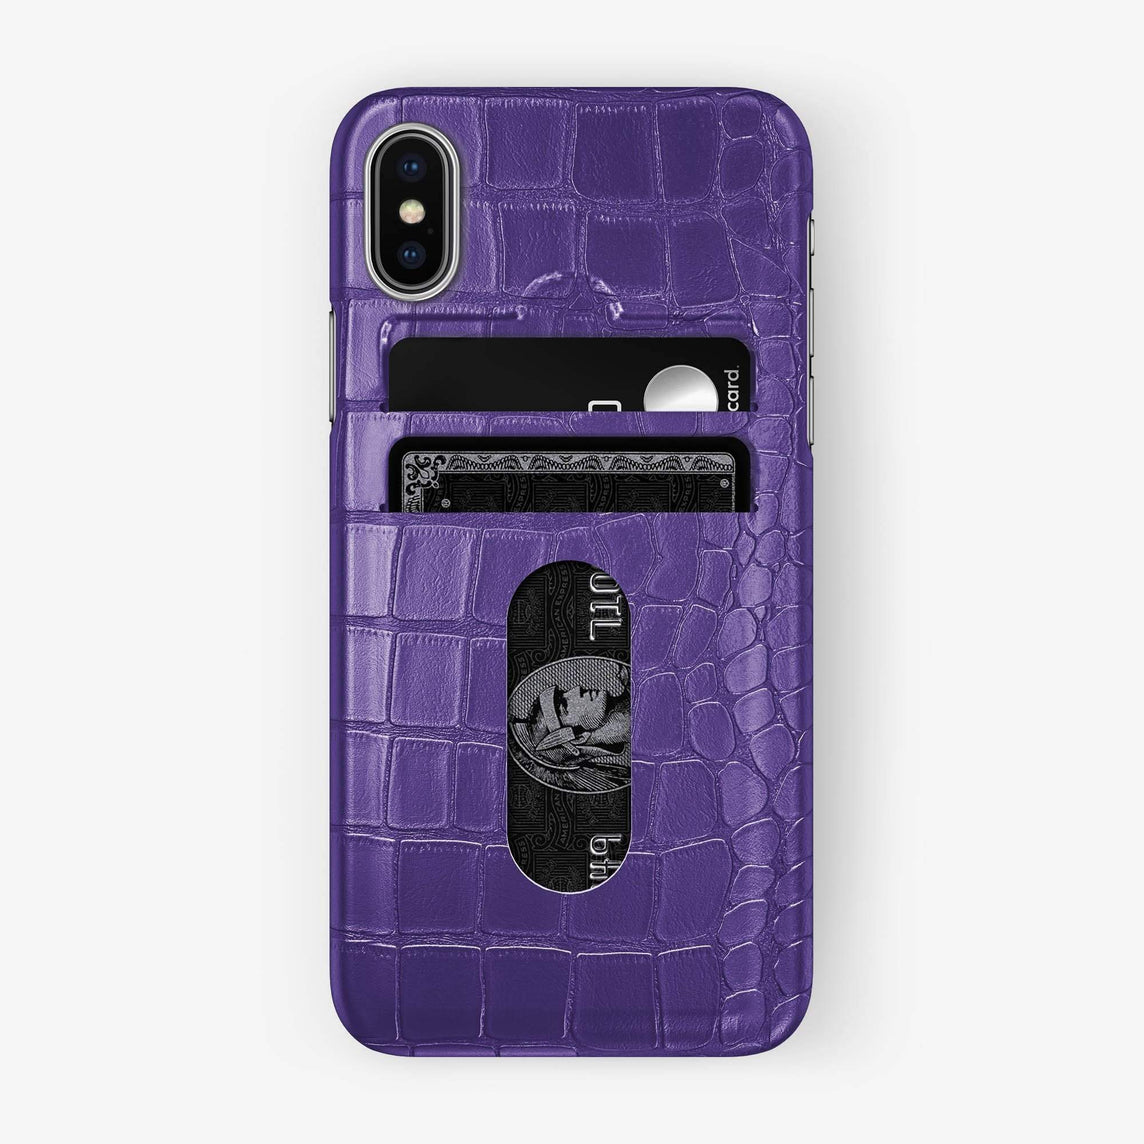 Alligator Card Holder Case iPhone Xs Max | Purple - Stainless Steel